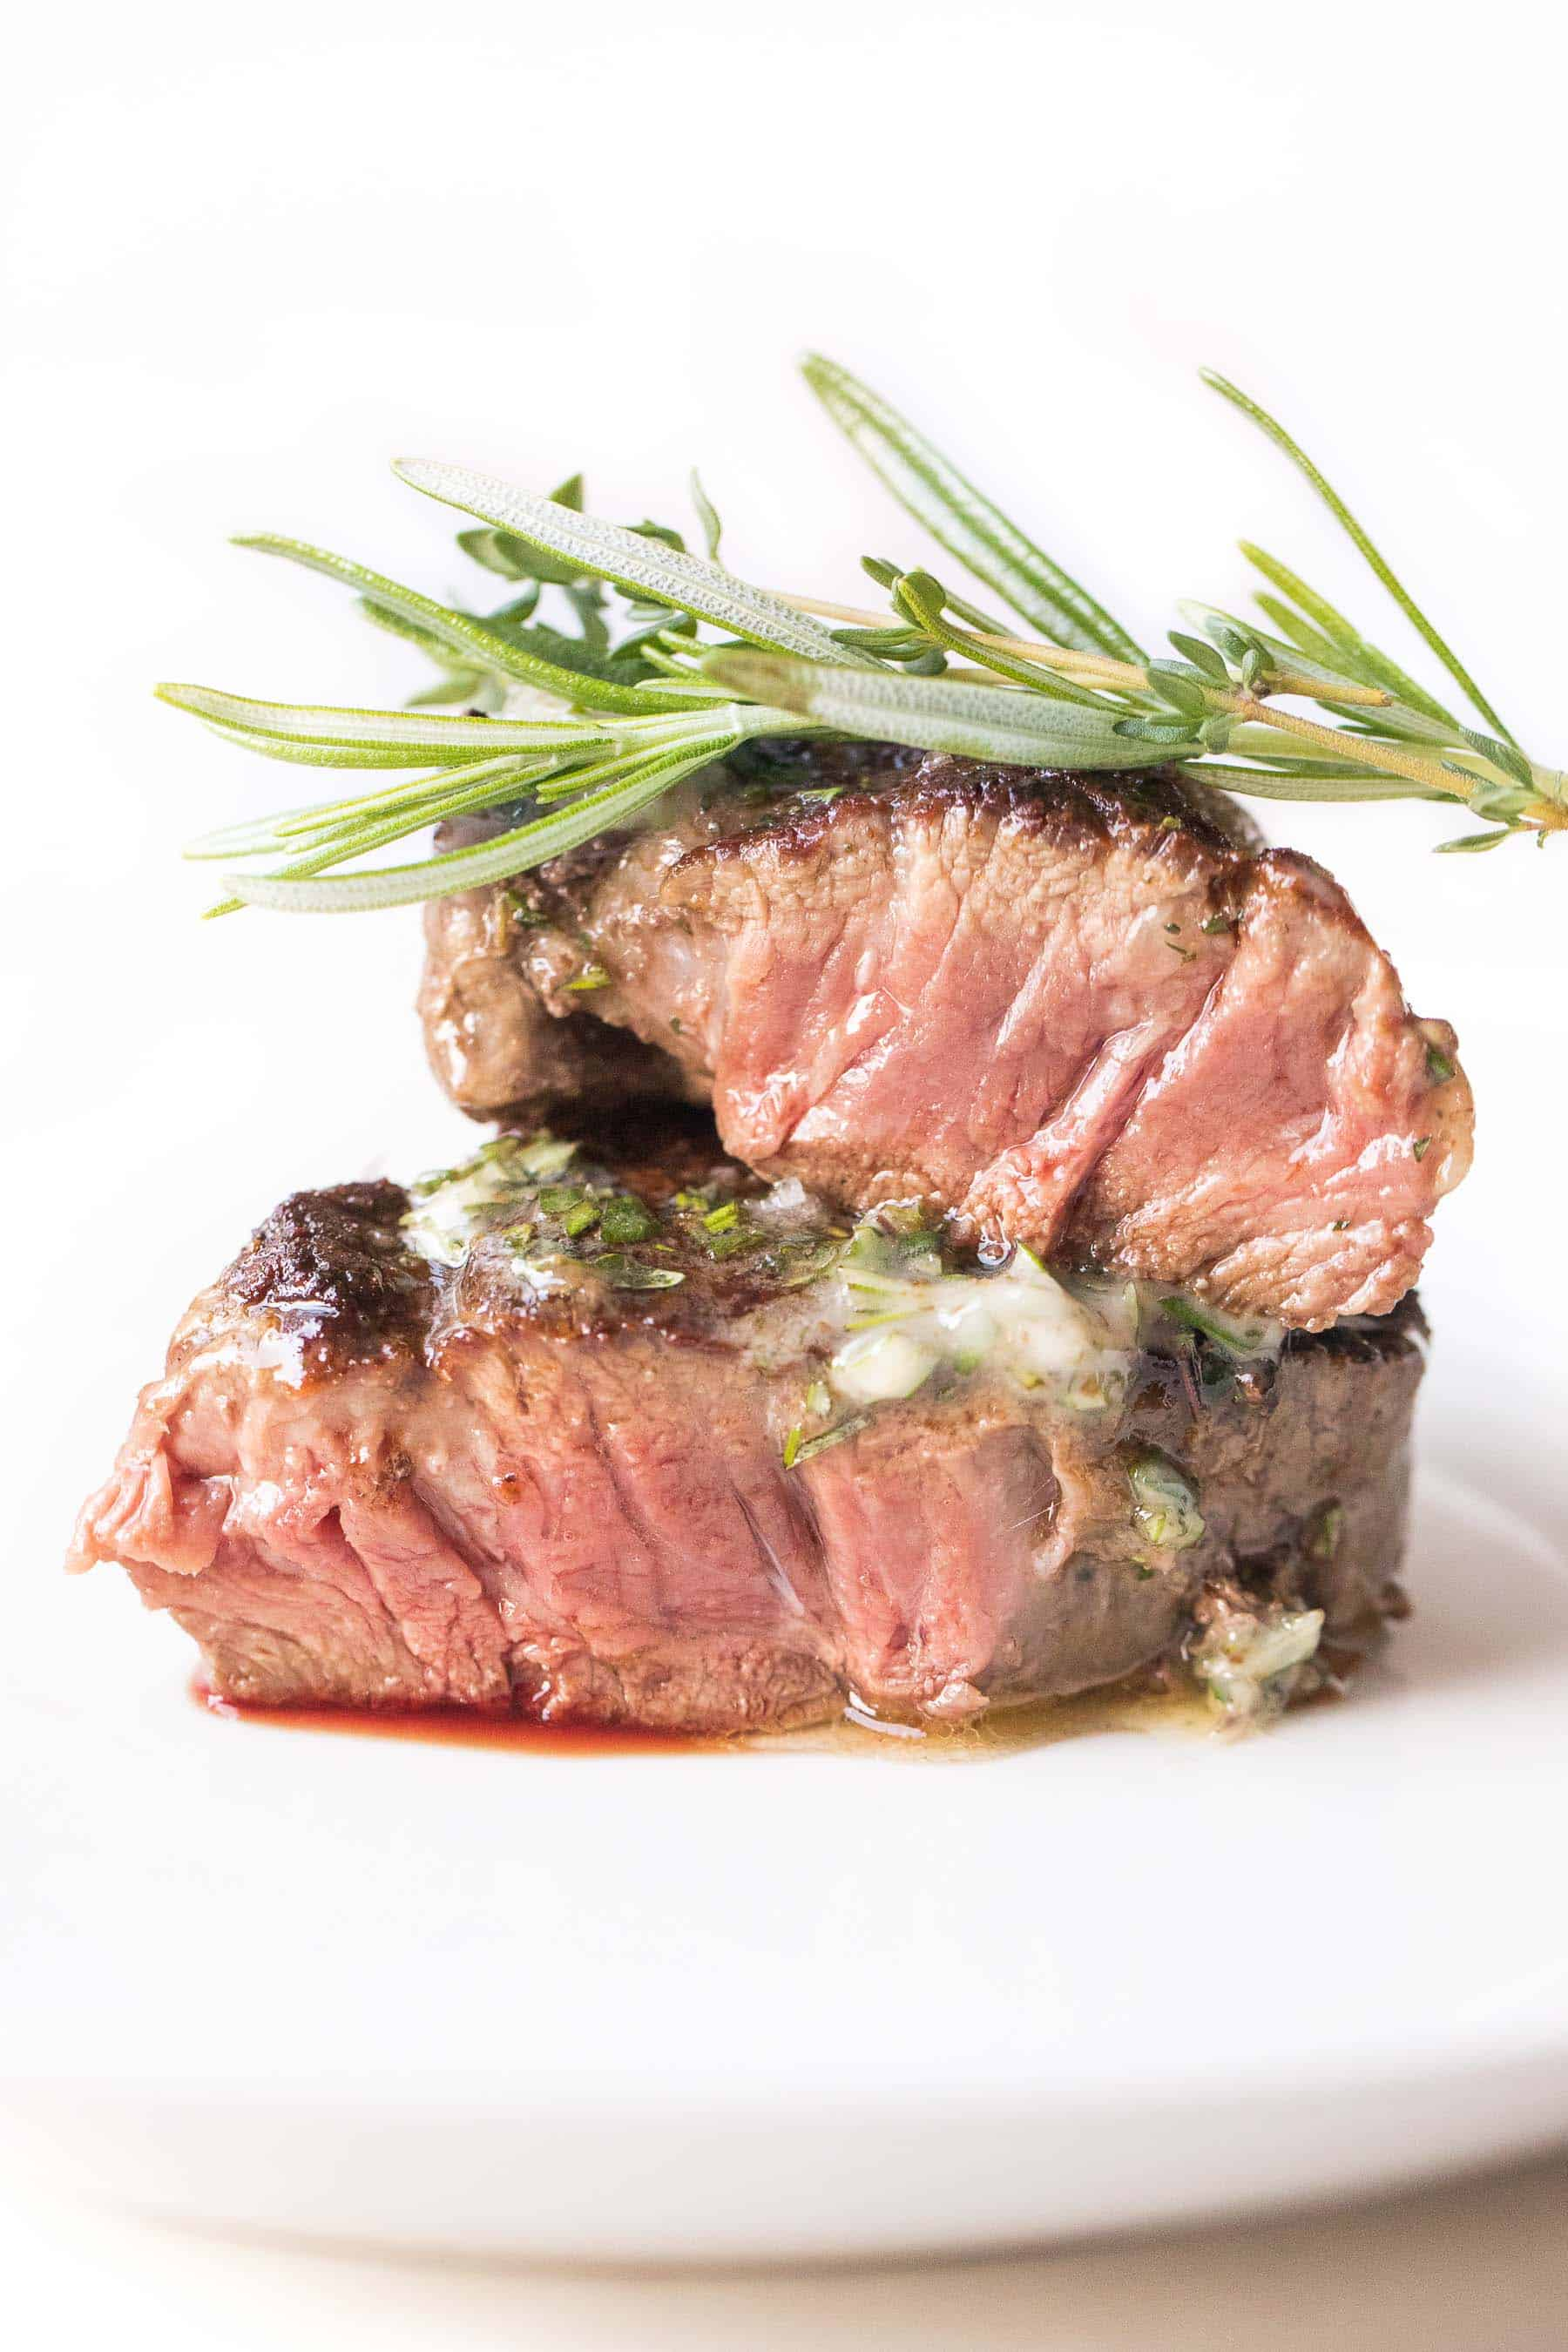 Filet mignon topped with herb butter on a white plate and white background